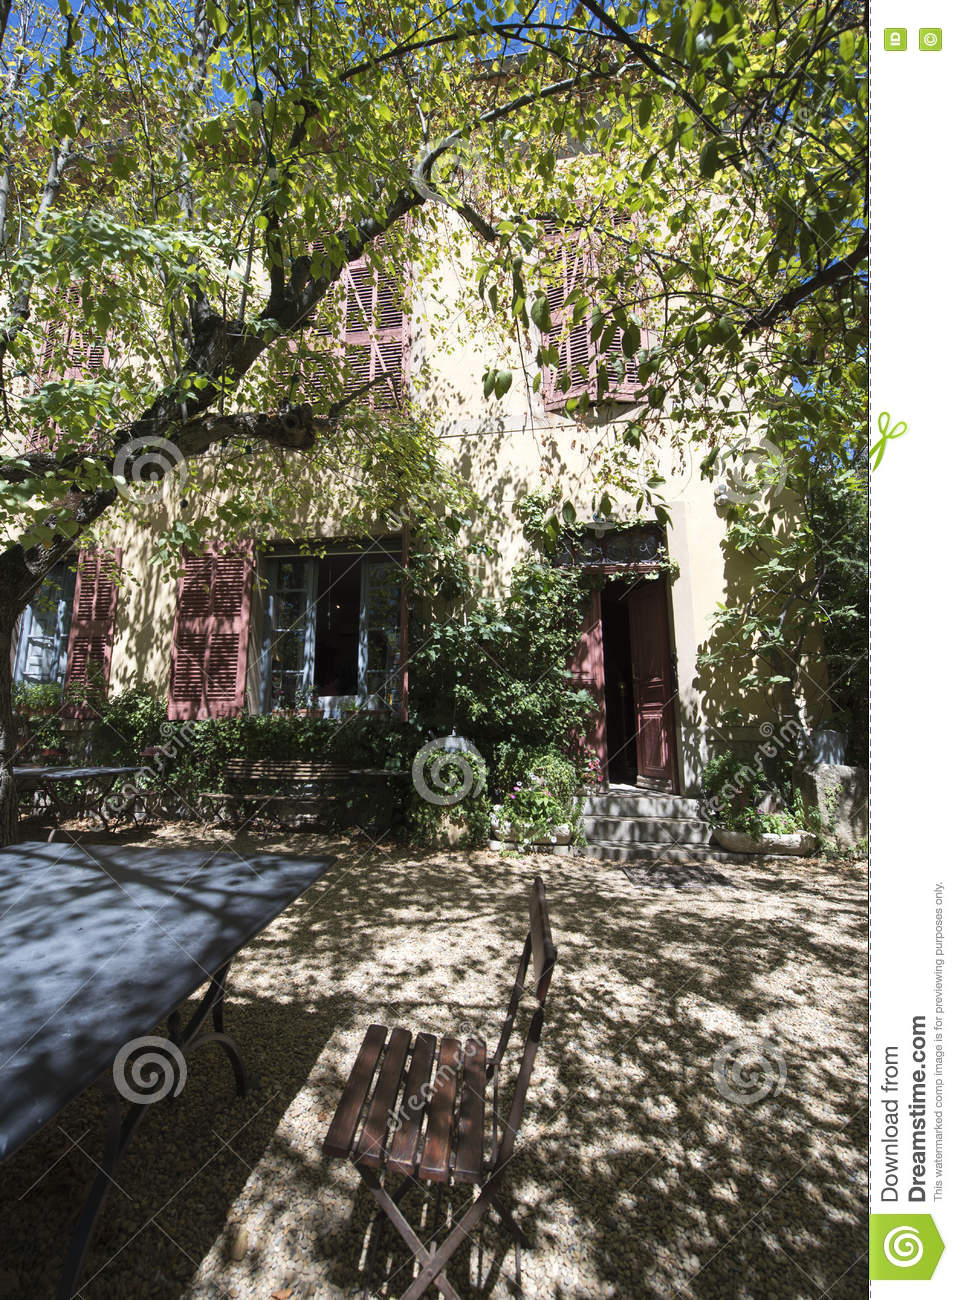 Paul Cezanne Studio, Aix-en-Provence, France Stock Image - Image of mansion, objects: 76554733